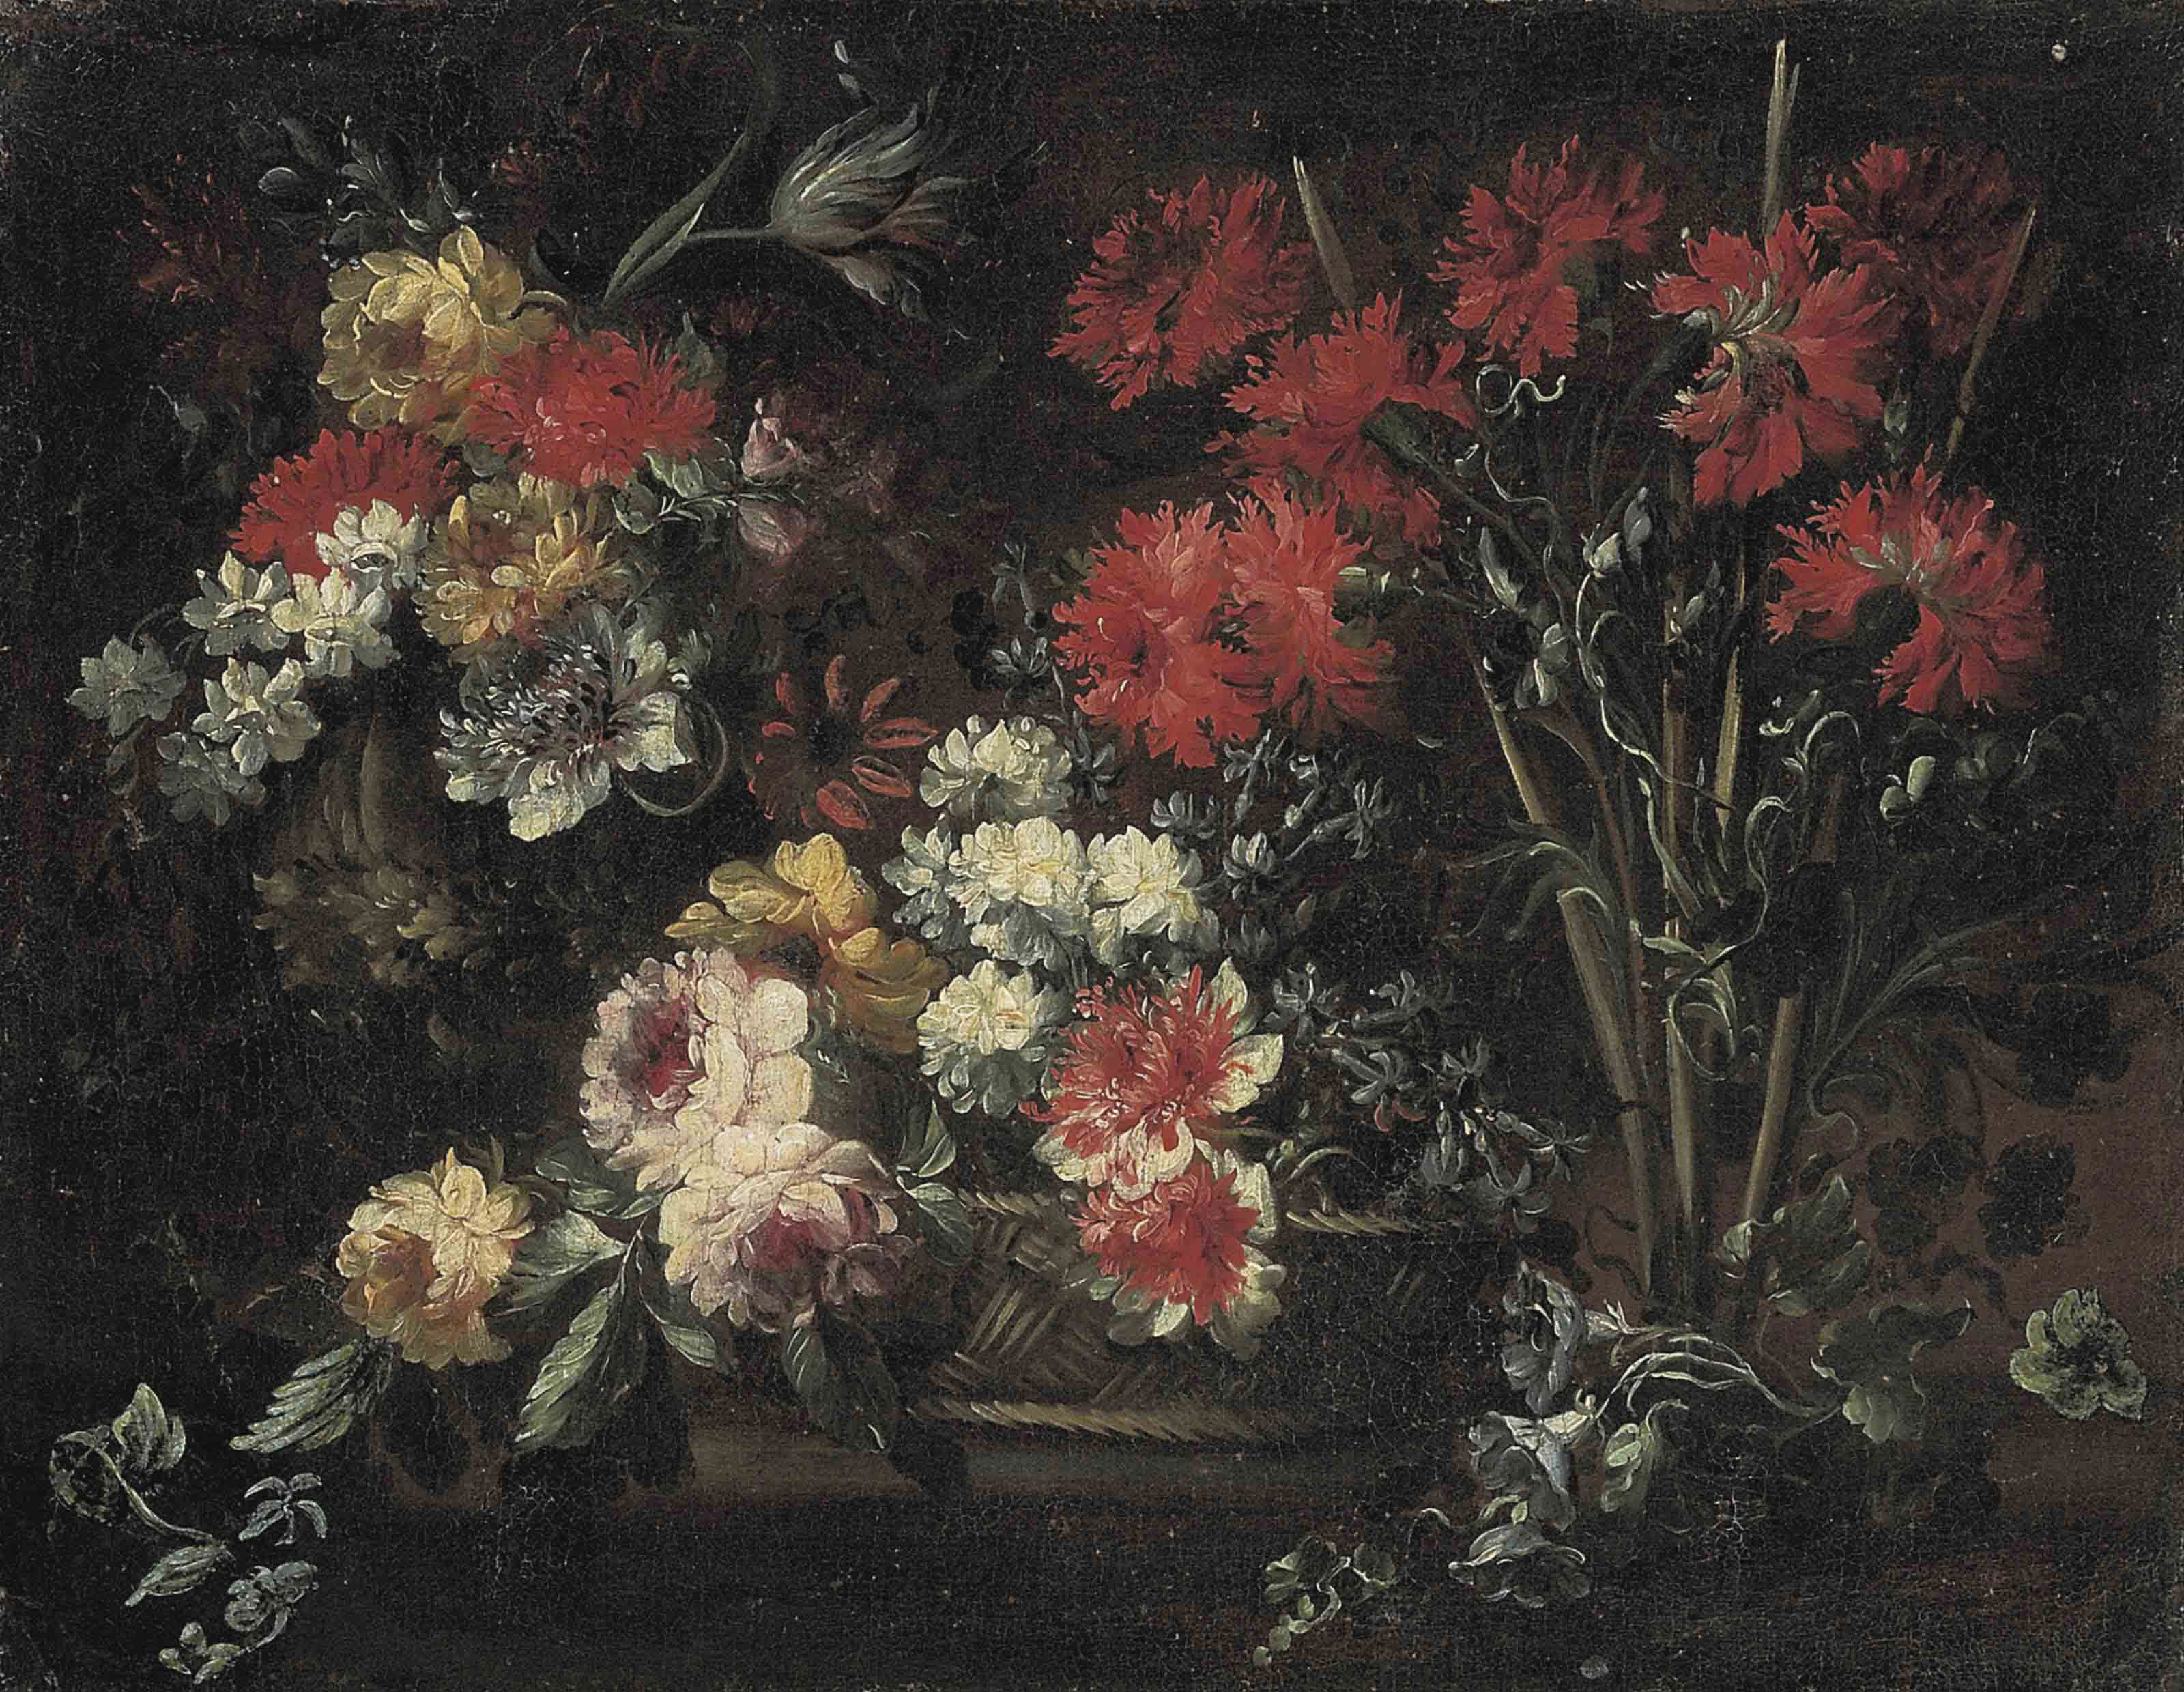 Roses, chrysanthemums and other flowers in a wicker basket, carnations, roses, narcissi and other flowers on a stone ledge